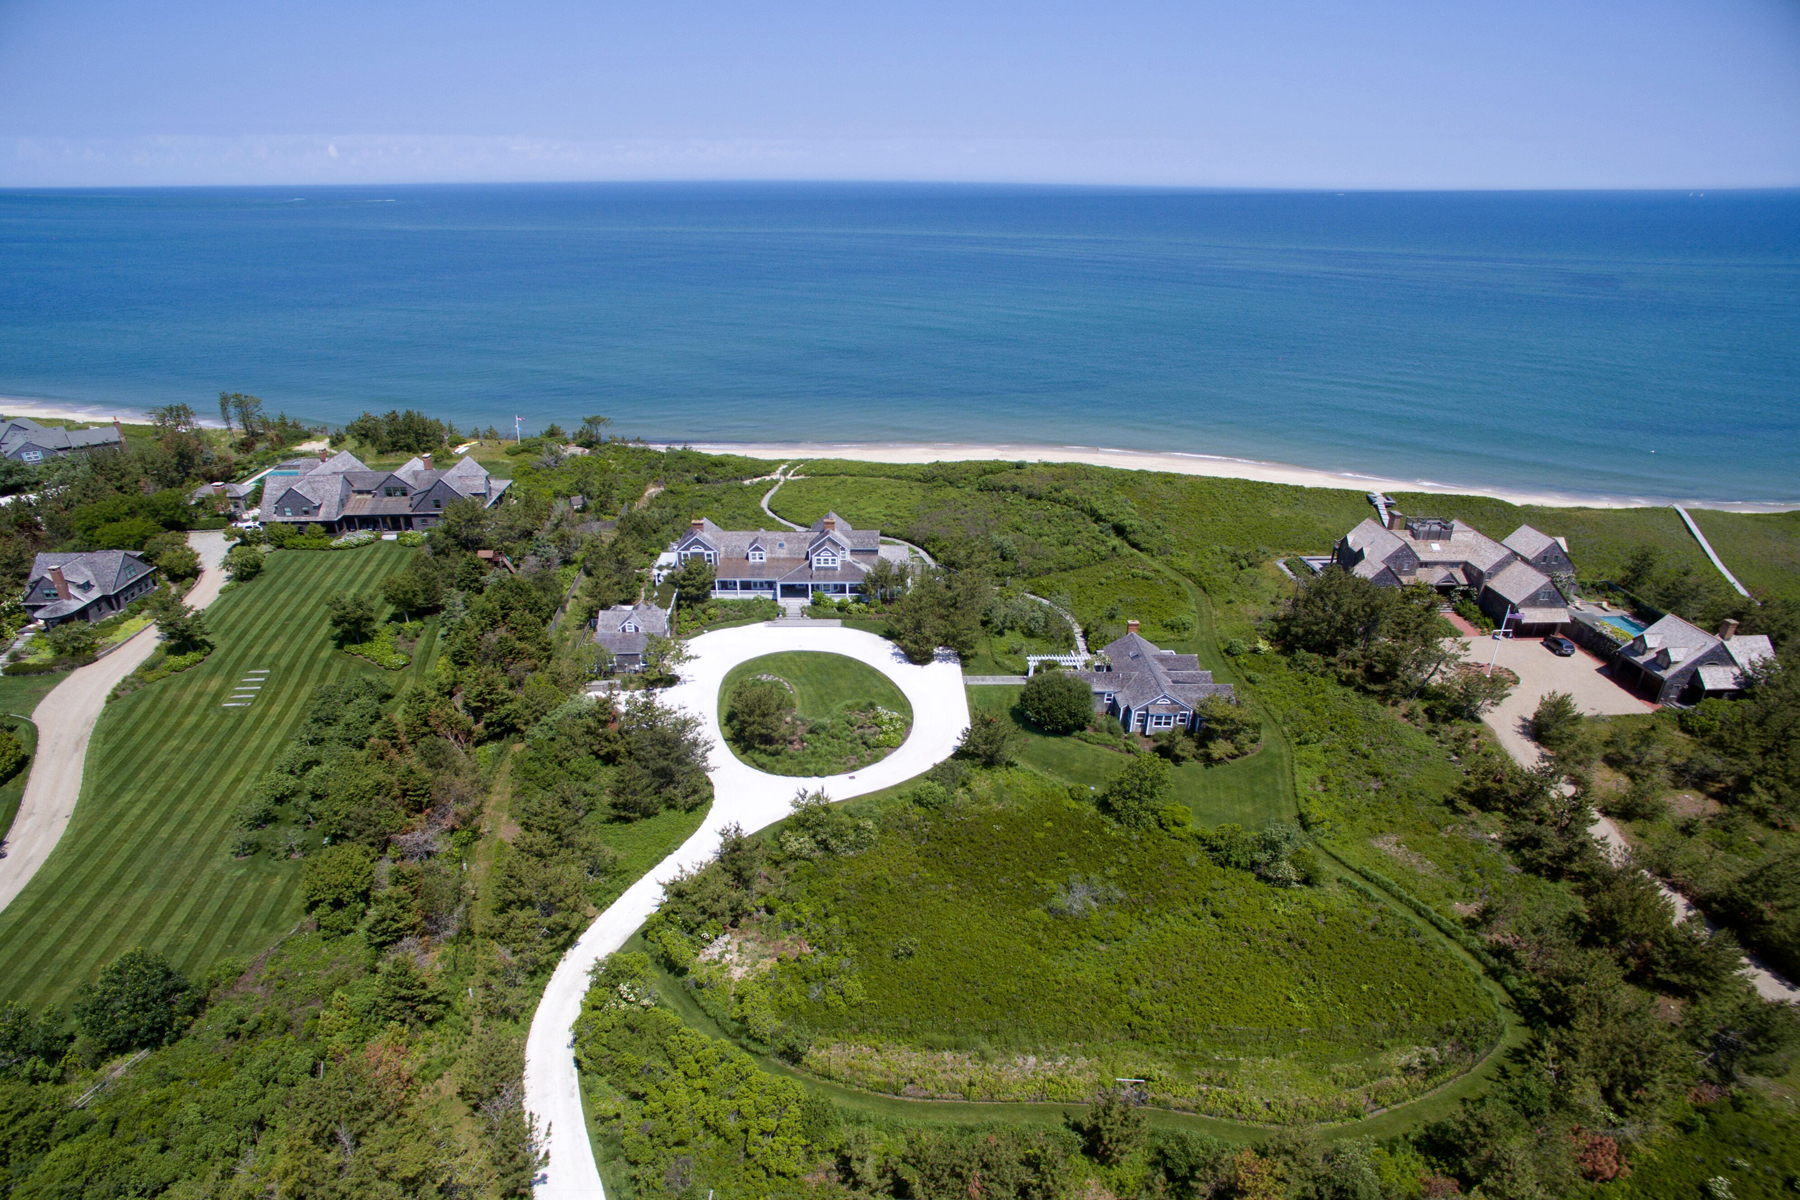 Casa para uma família para Venda às Spectacular Oceanfront Dionis! 119 Eel Point Road 119 R Eel Point Road Nantucket, Massachusetts, 02554 Estados Unidos